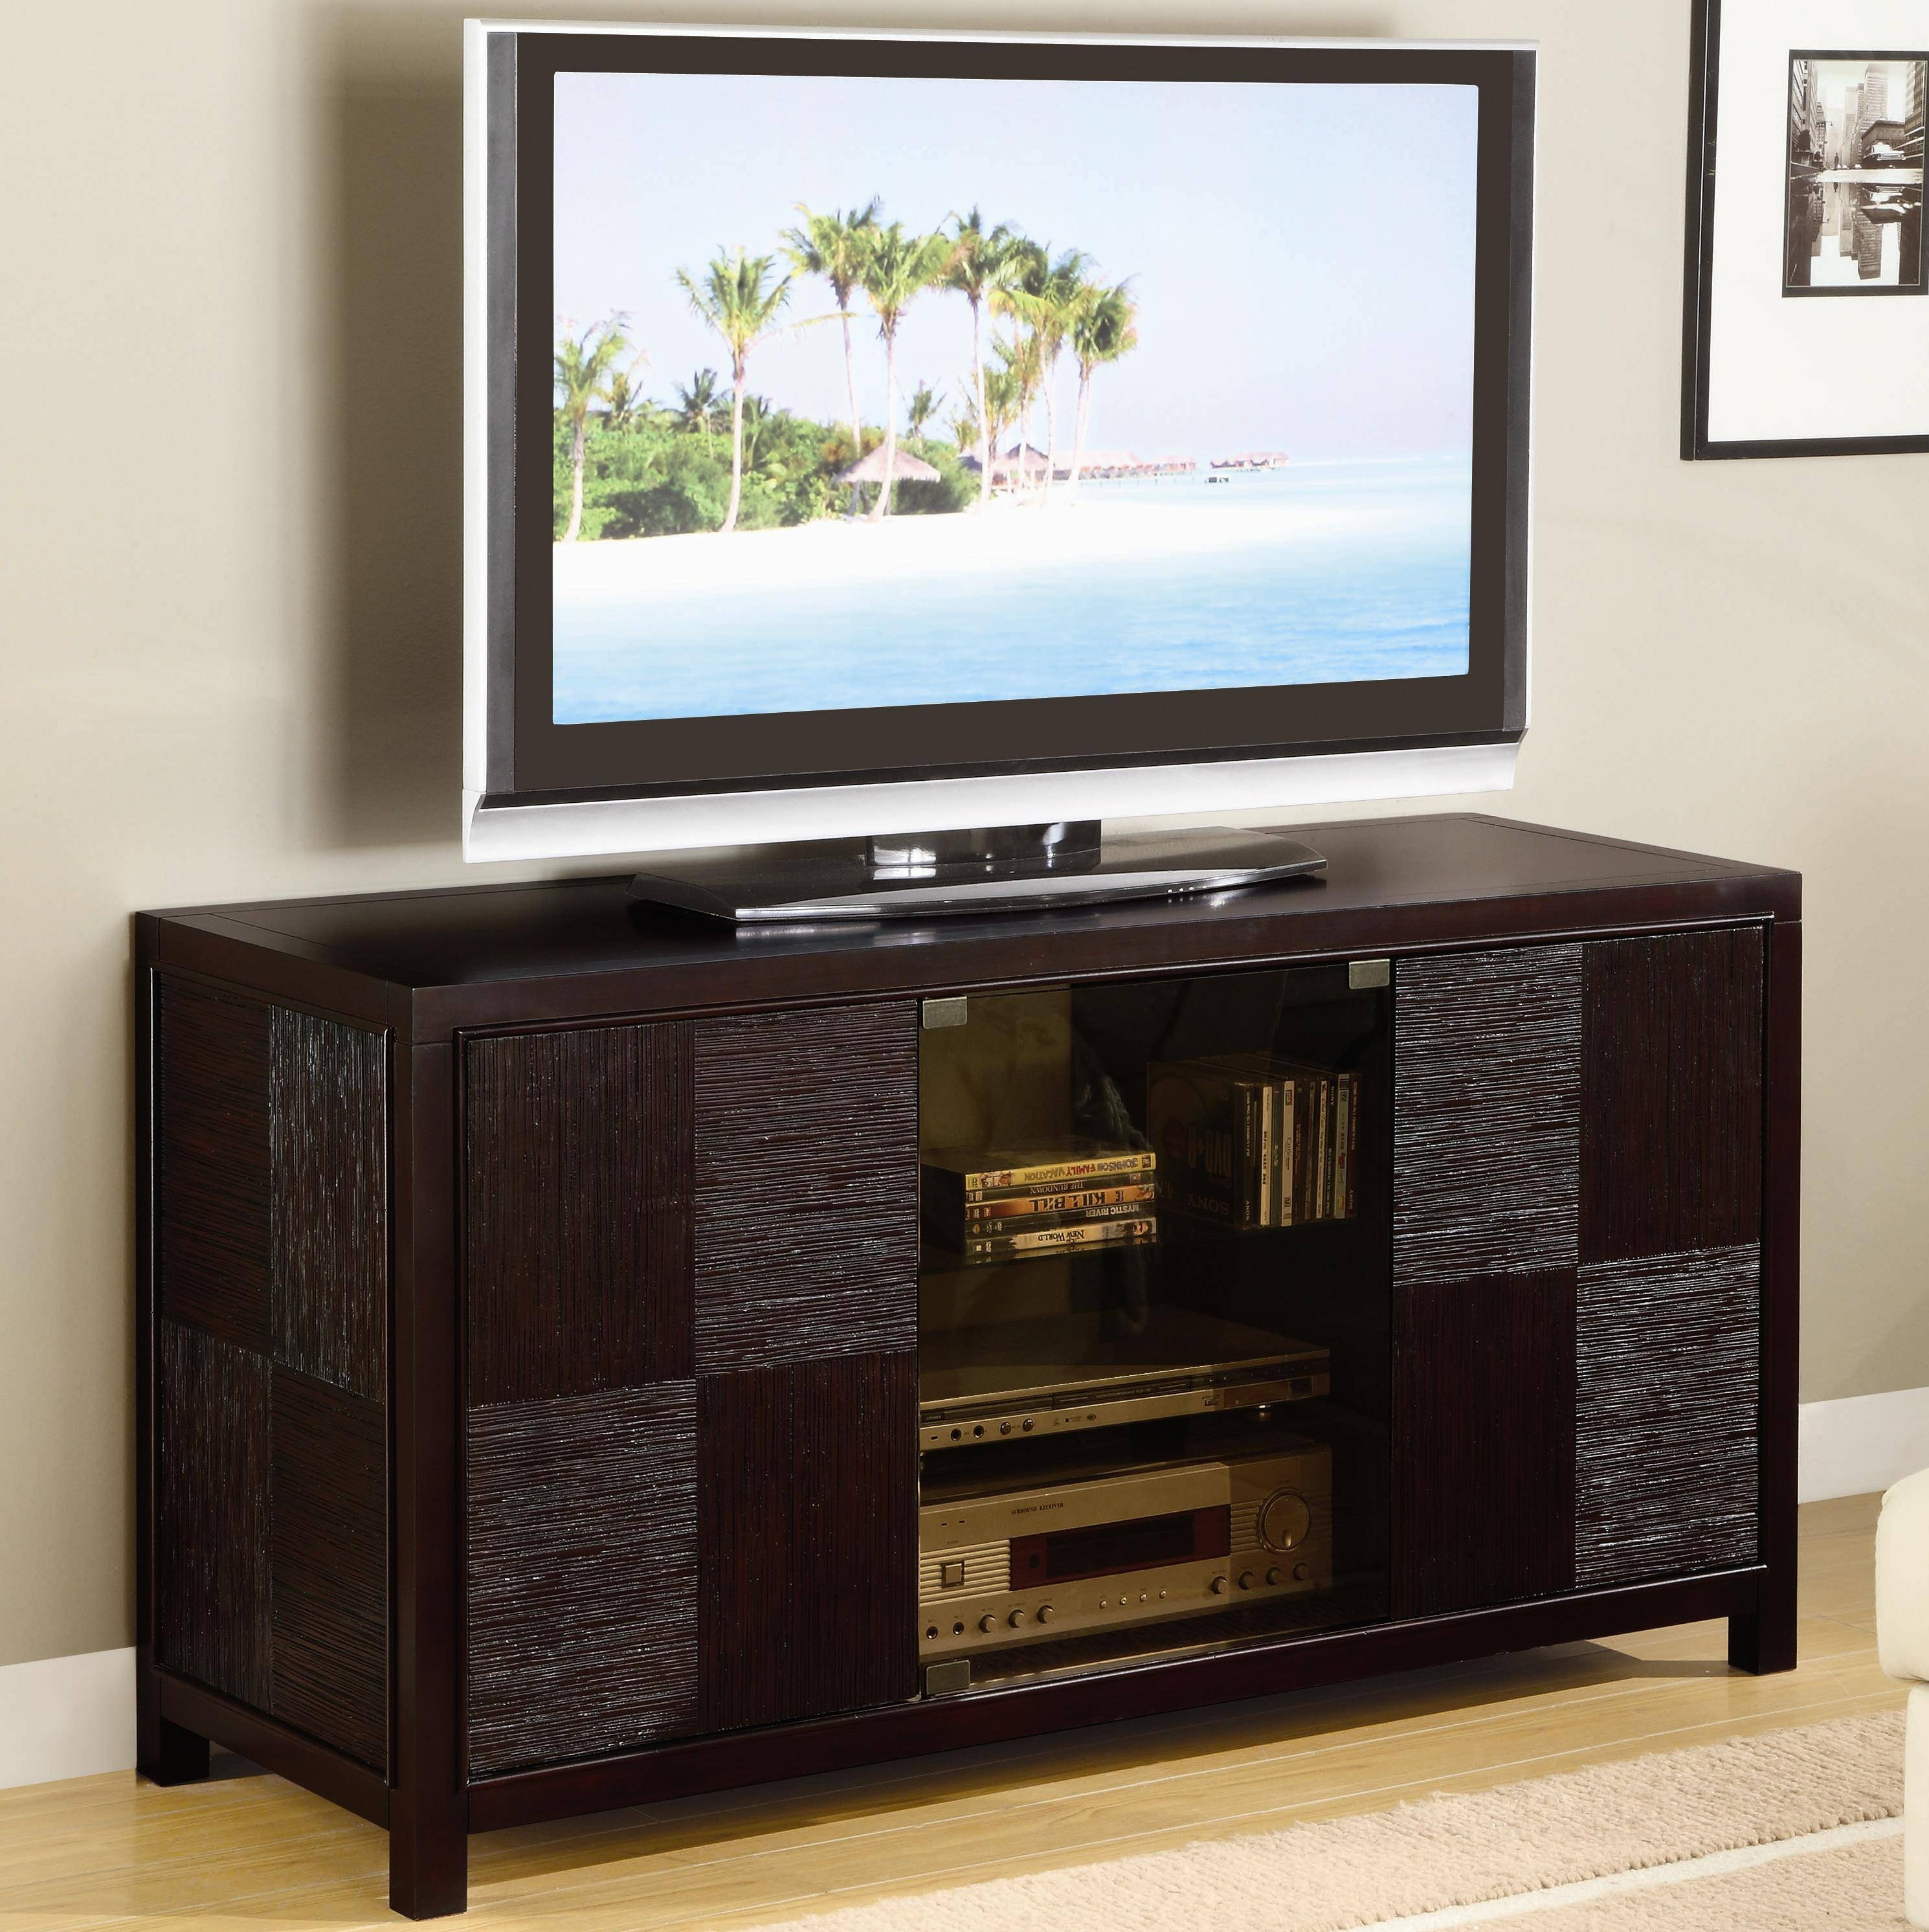 Contemporary Modern Tv Stand Console Table With Storage And regarding Storage Tv Stands (Image 3 of 15)